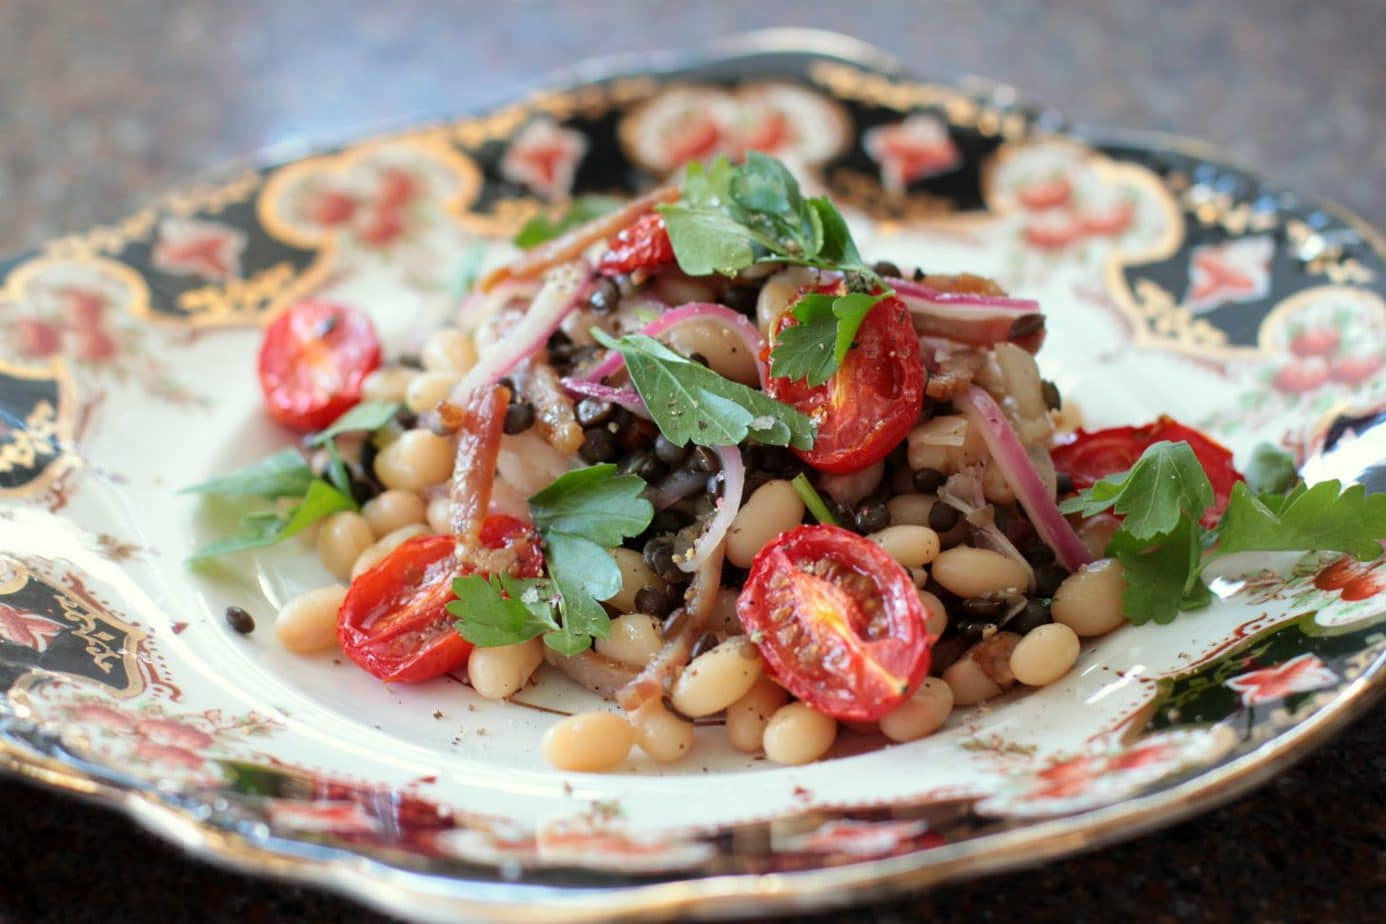 This warm bean bacon salad has a surprise ingredient....lentils! Lentils are packed with power nutrients and good for your soul. Add a hint of acidity with the oven roasted tomatoes and some freshness with the parsley. Voila! #lentilsalad #legumes #salad #pulses #warmsalad